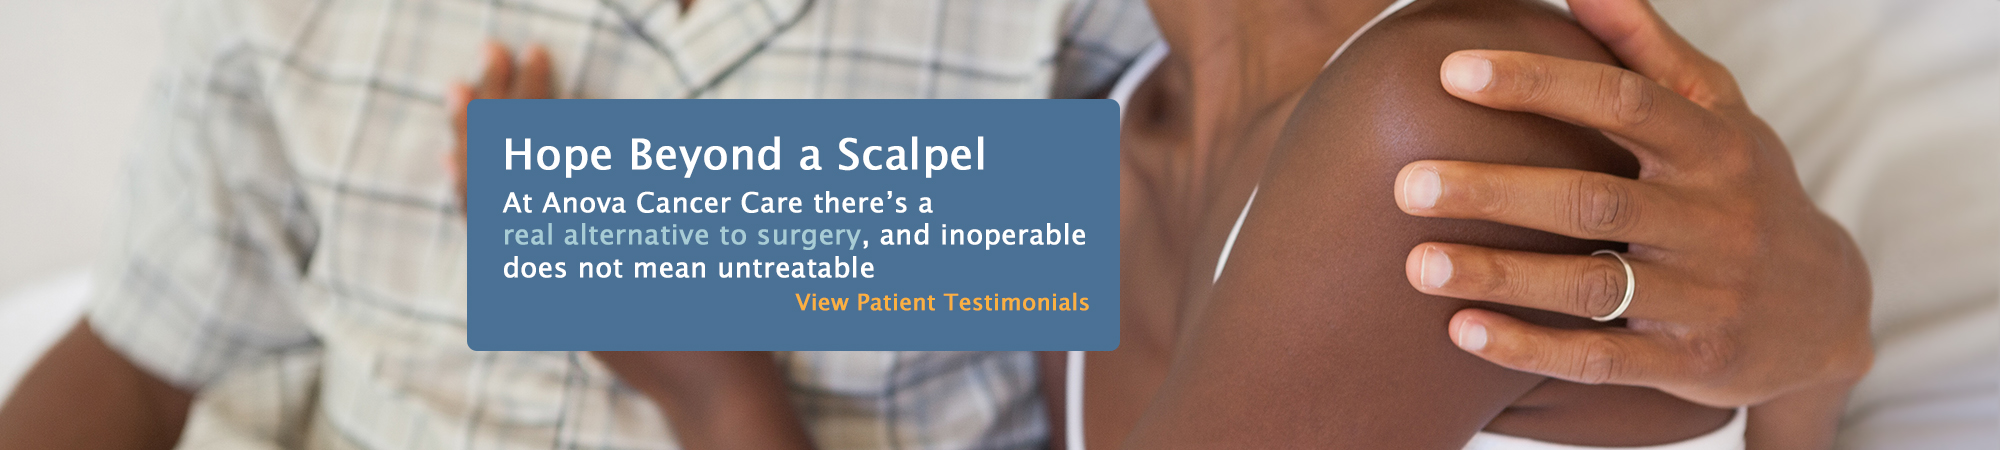 Hope Beyond a Scalpel | Anova Cancer Care